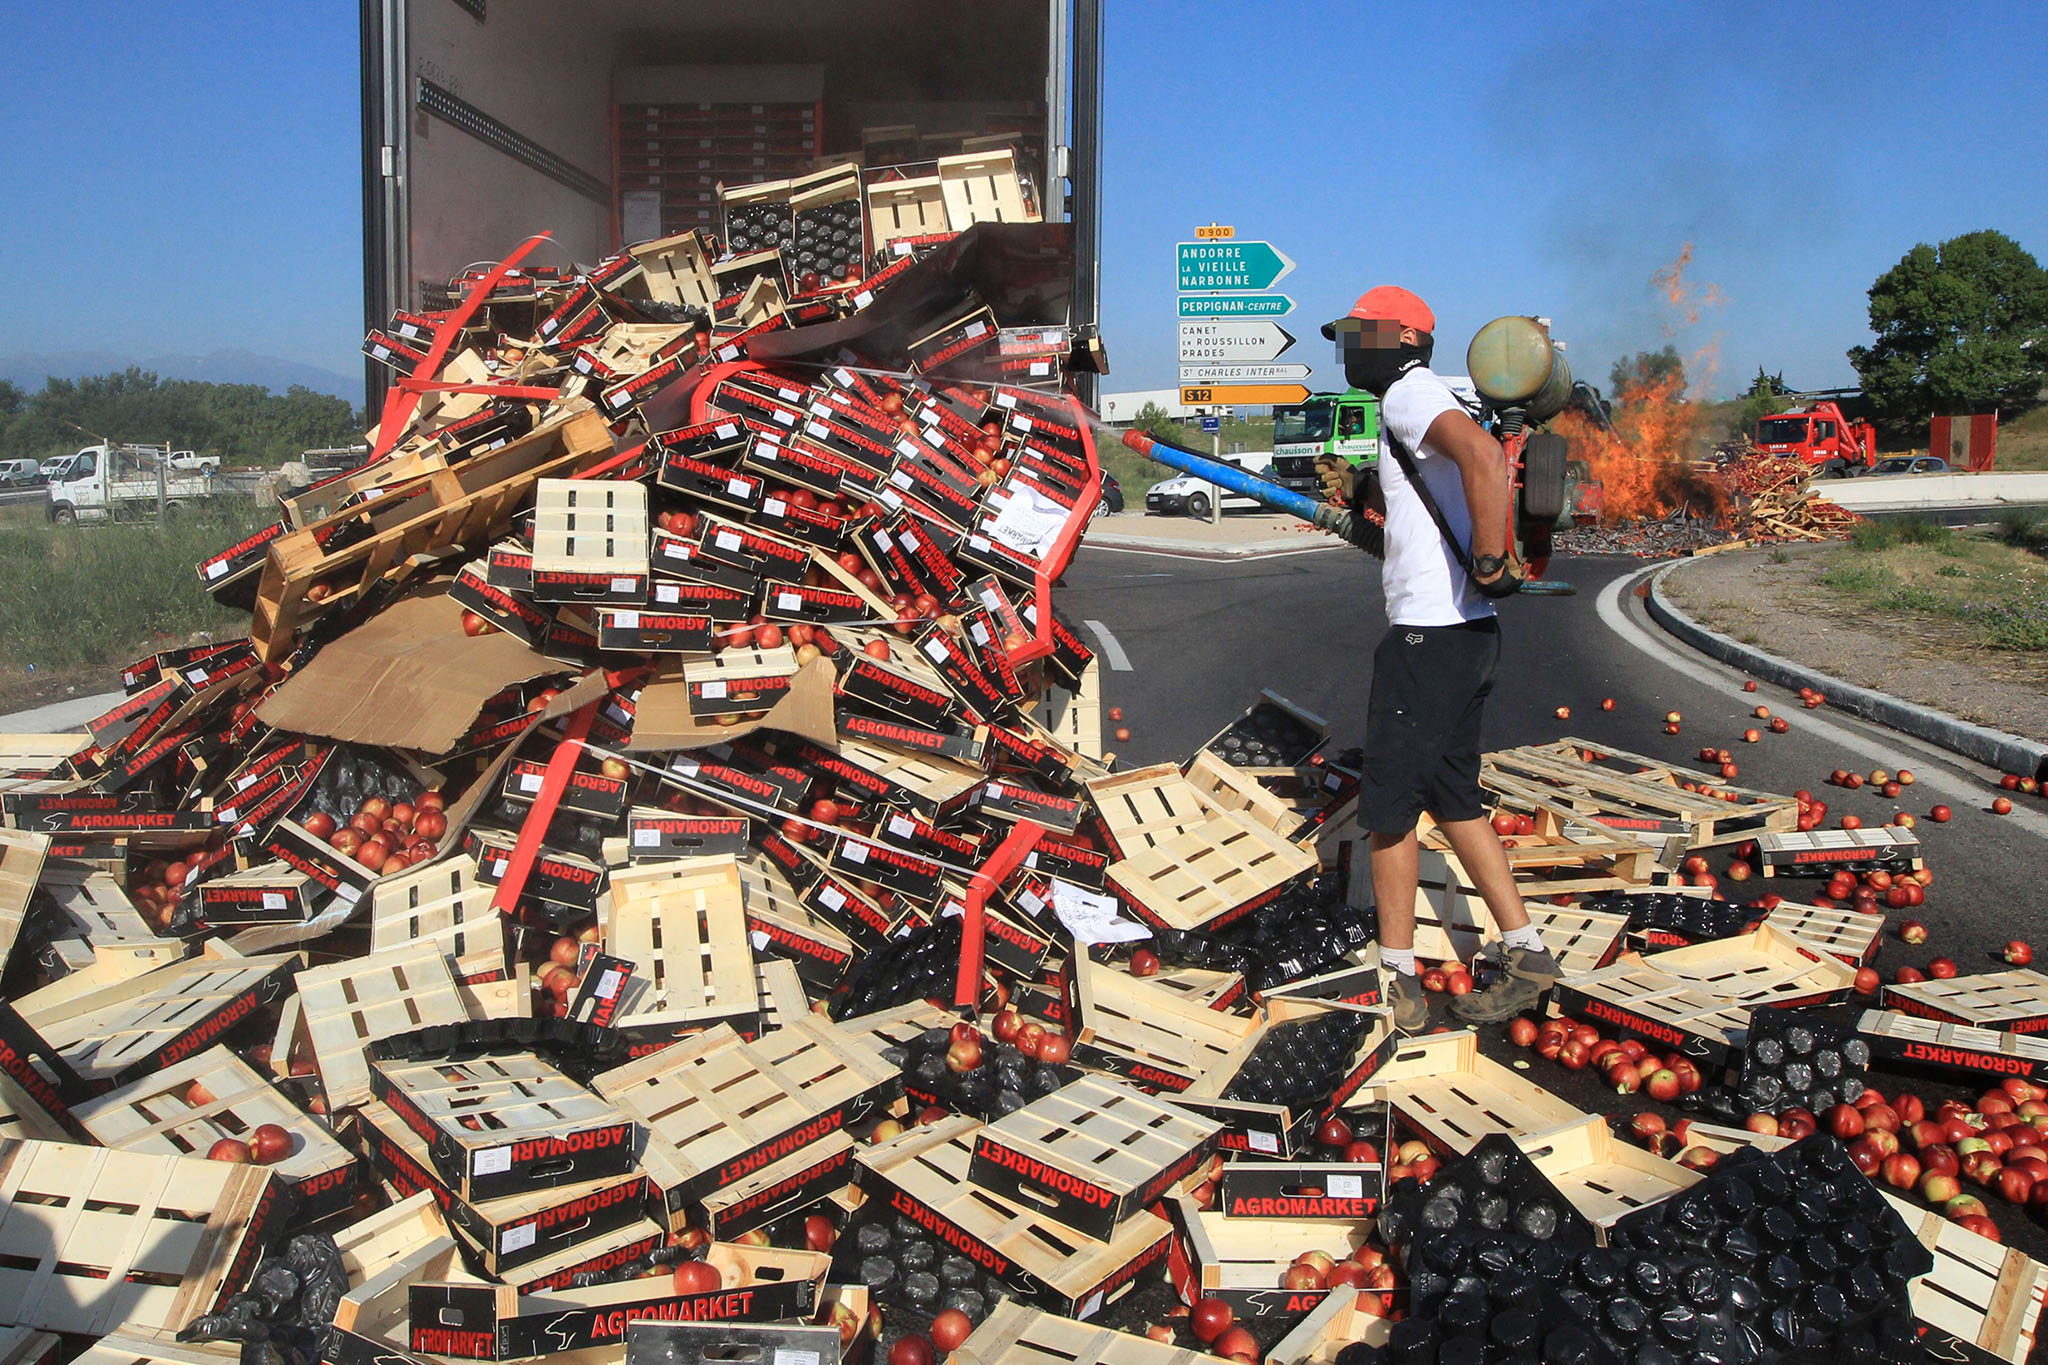 A protester neutralizes with fuel the freight of peaches from a Spanish truck after protesters discharge peaches and set fire (at background) to the crates of fruits during a demonstration at a toll bridge on the A9 motorway near Perpignan, southern France, on July 17, 2014 to protest against fruit importation low prices. AFP/ PHOTO RAYMOND ROIGRAYMOND ROIG/AFP/Getty Images